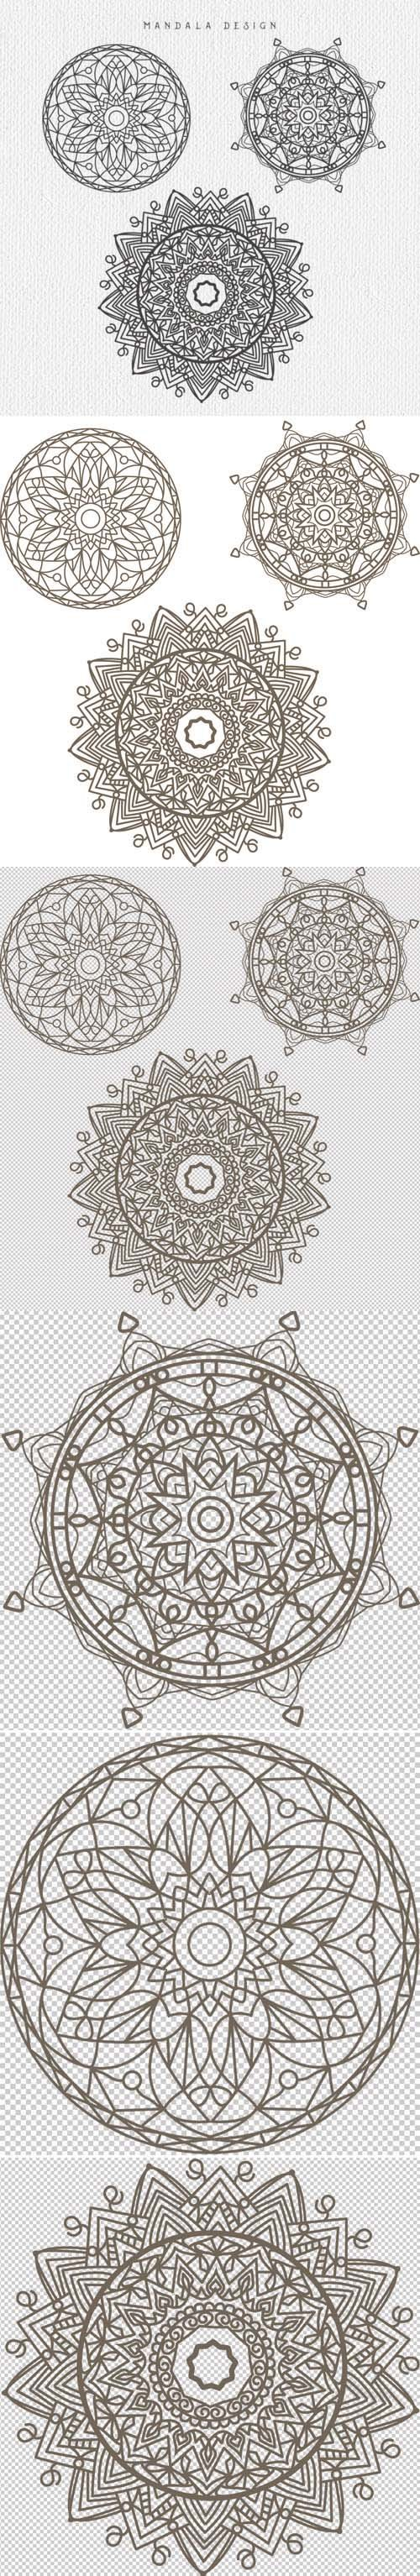 3 Mandala Designs in Vector